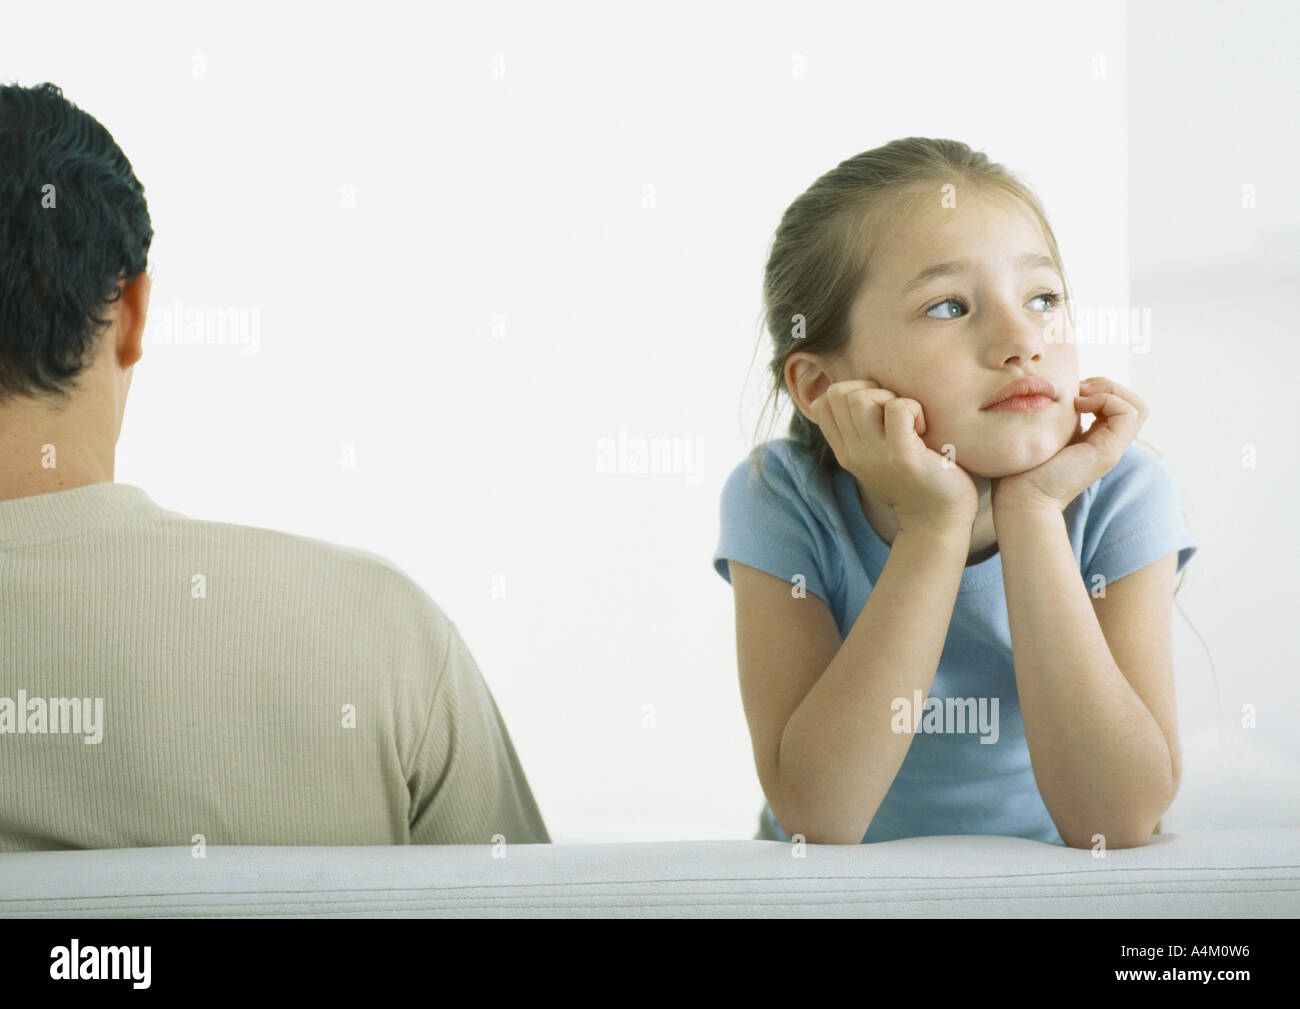 Girl holding head, leaning on elbows next to man, rear view - Stock Image